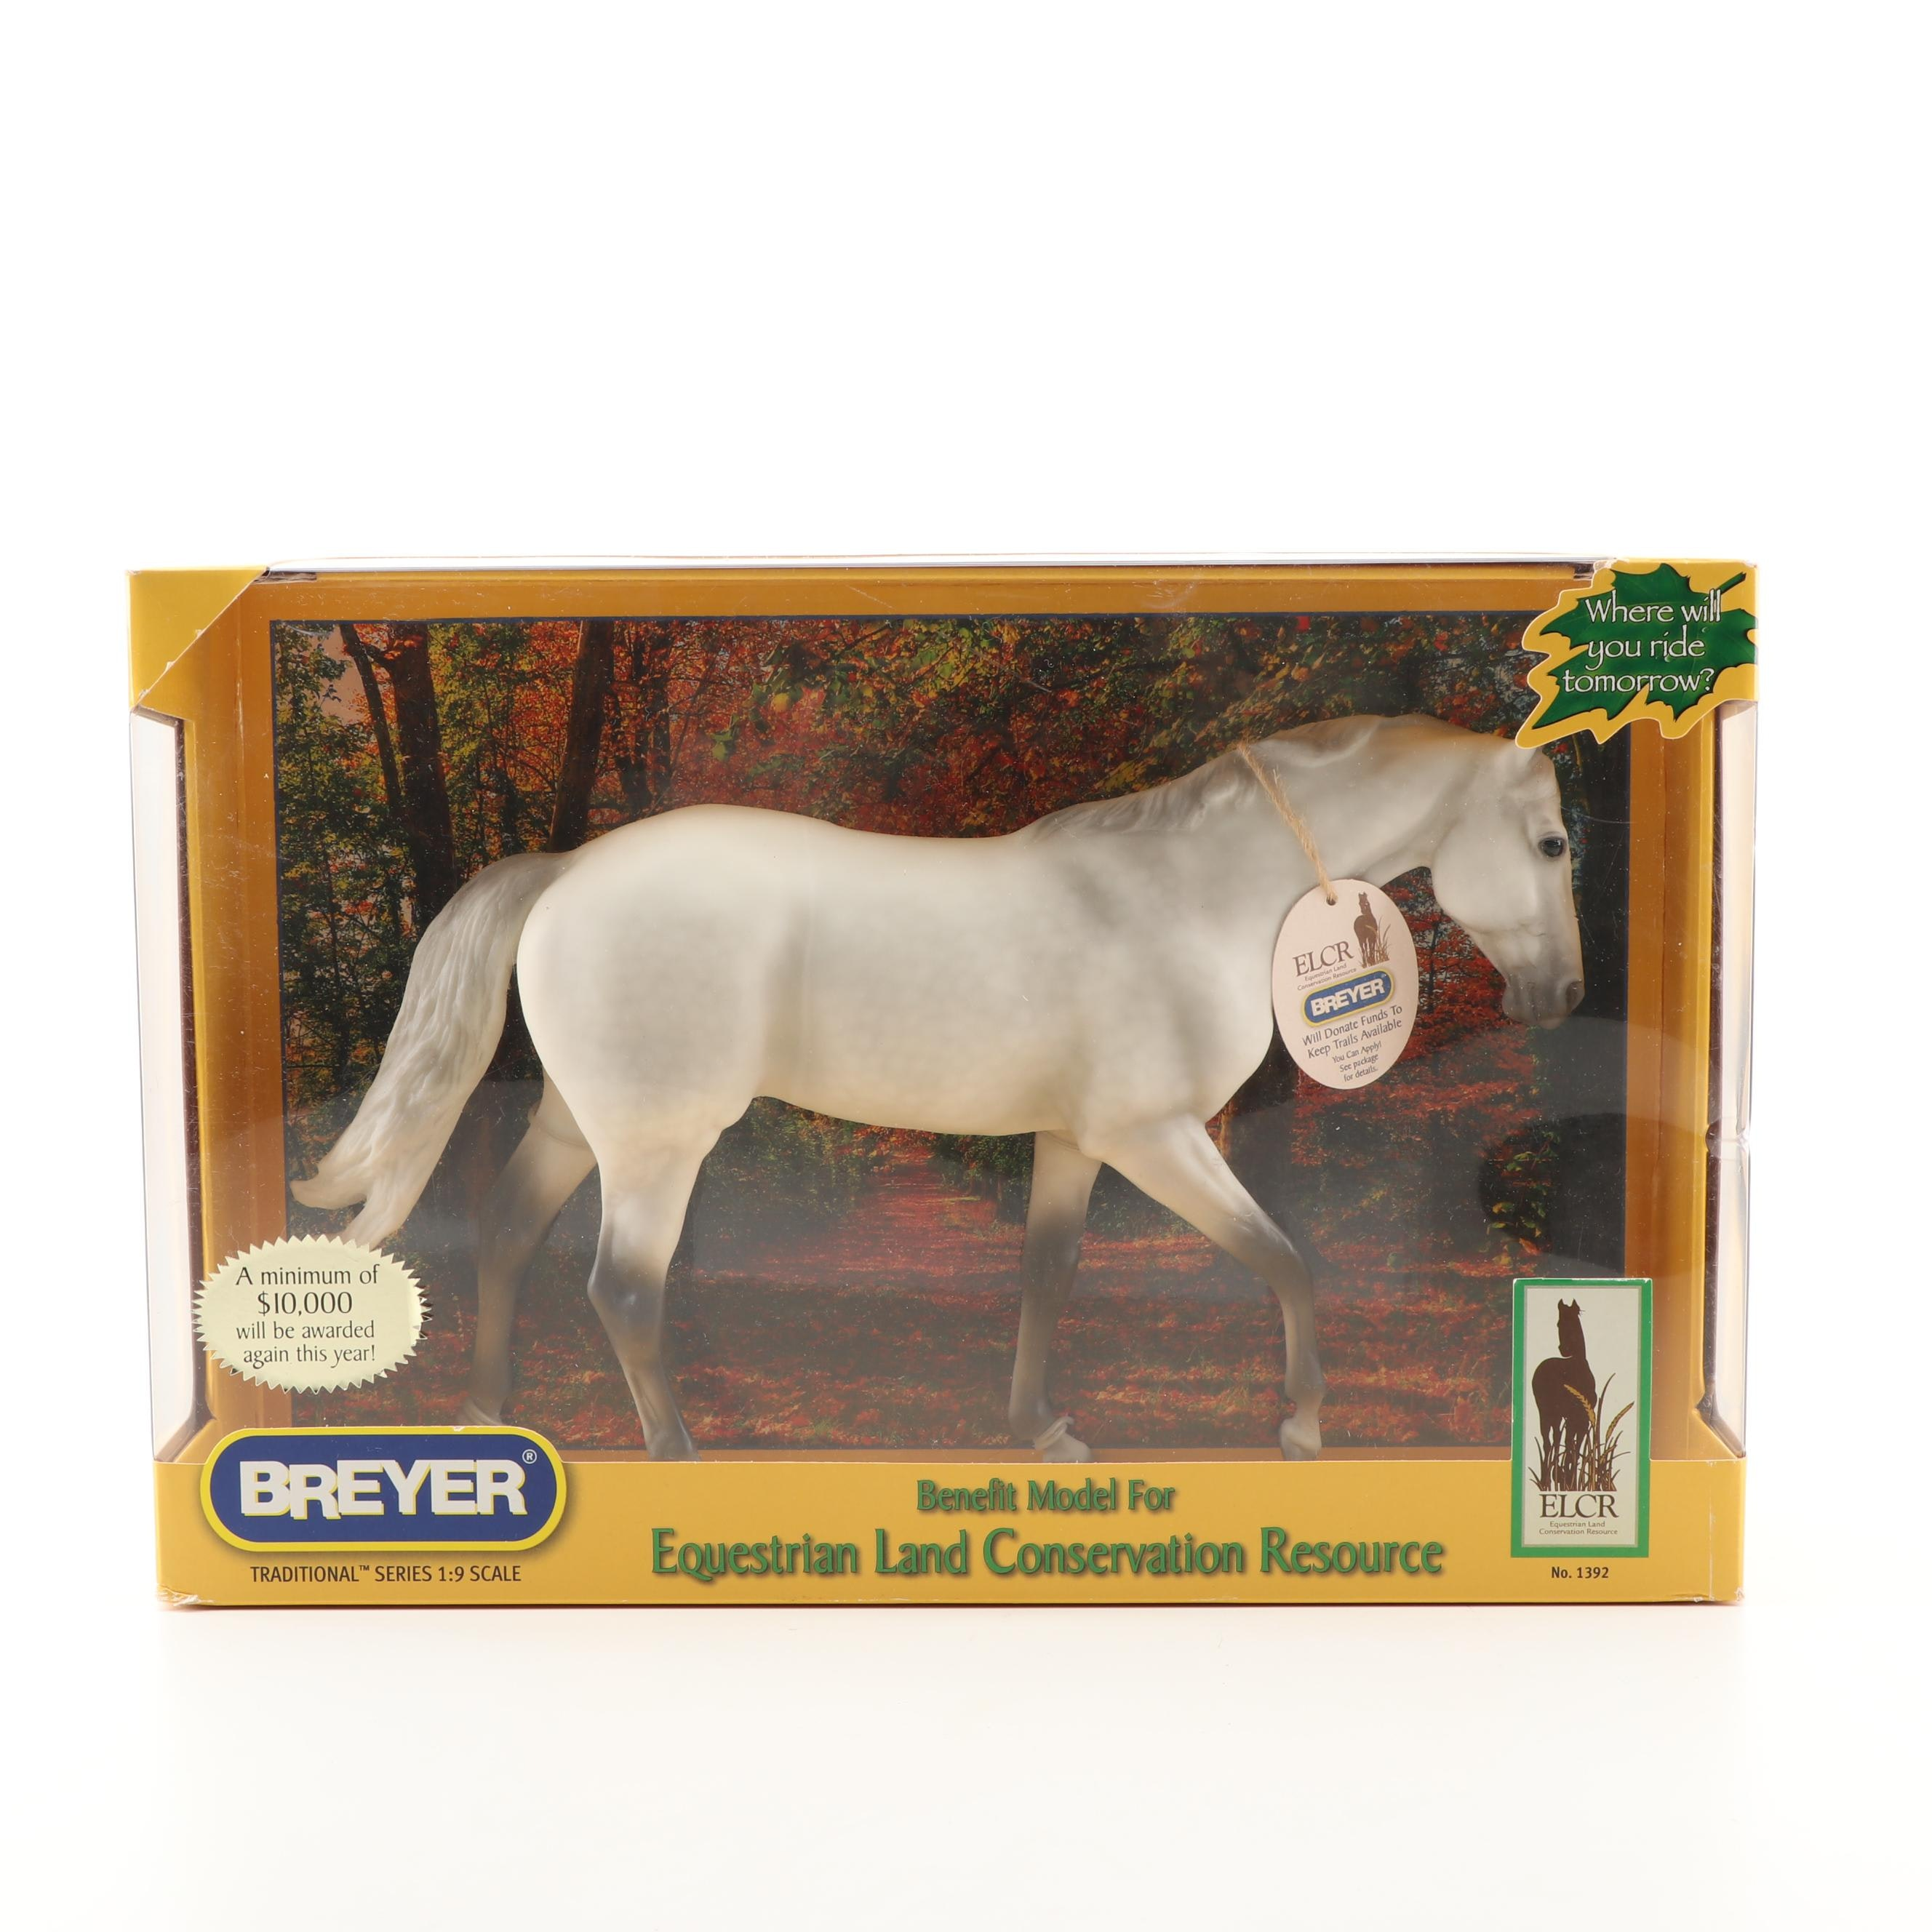 2009 Equestrian Land Conservation Resource Benefit Breyer Model Horse